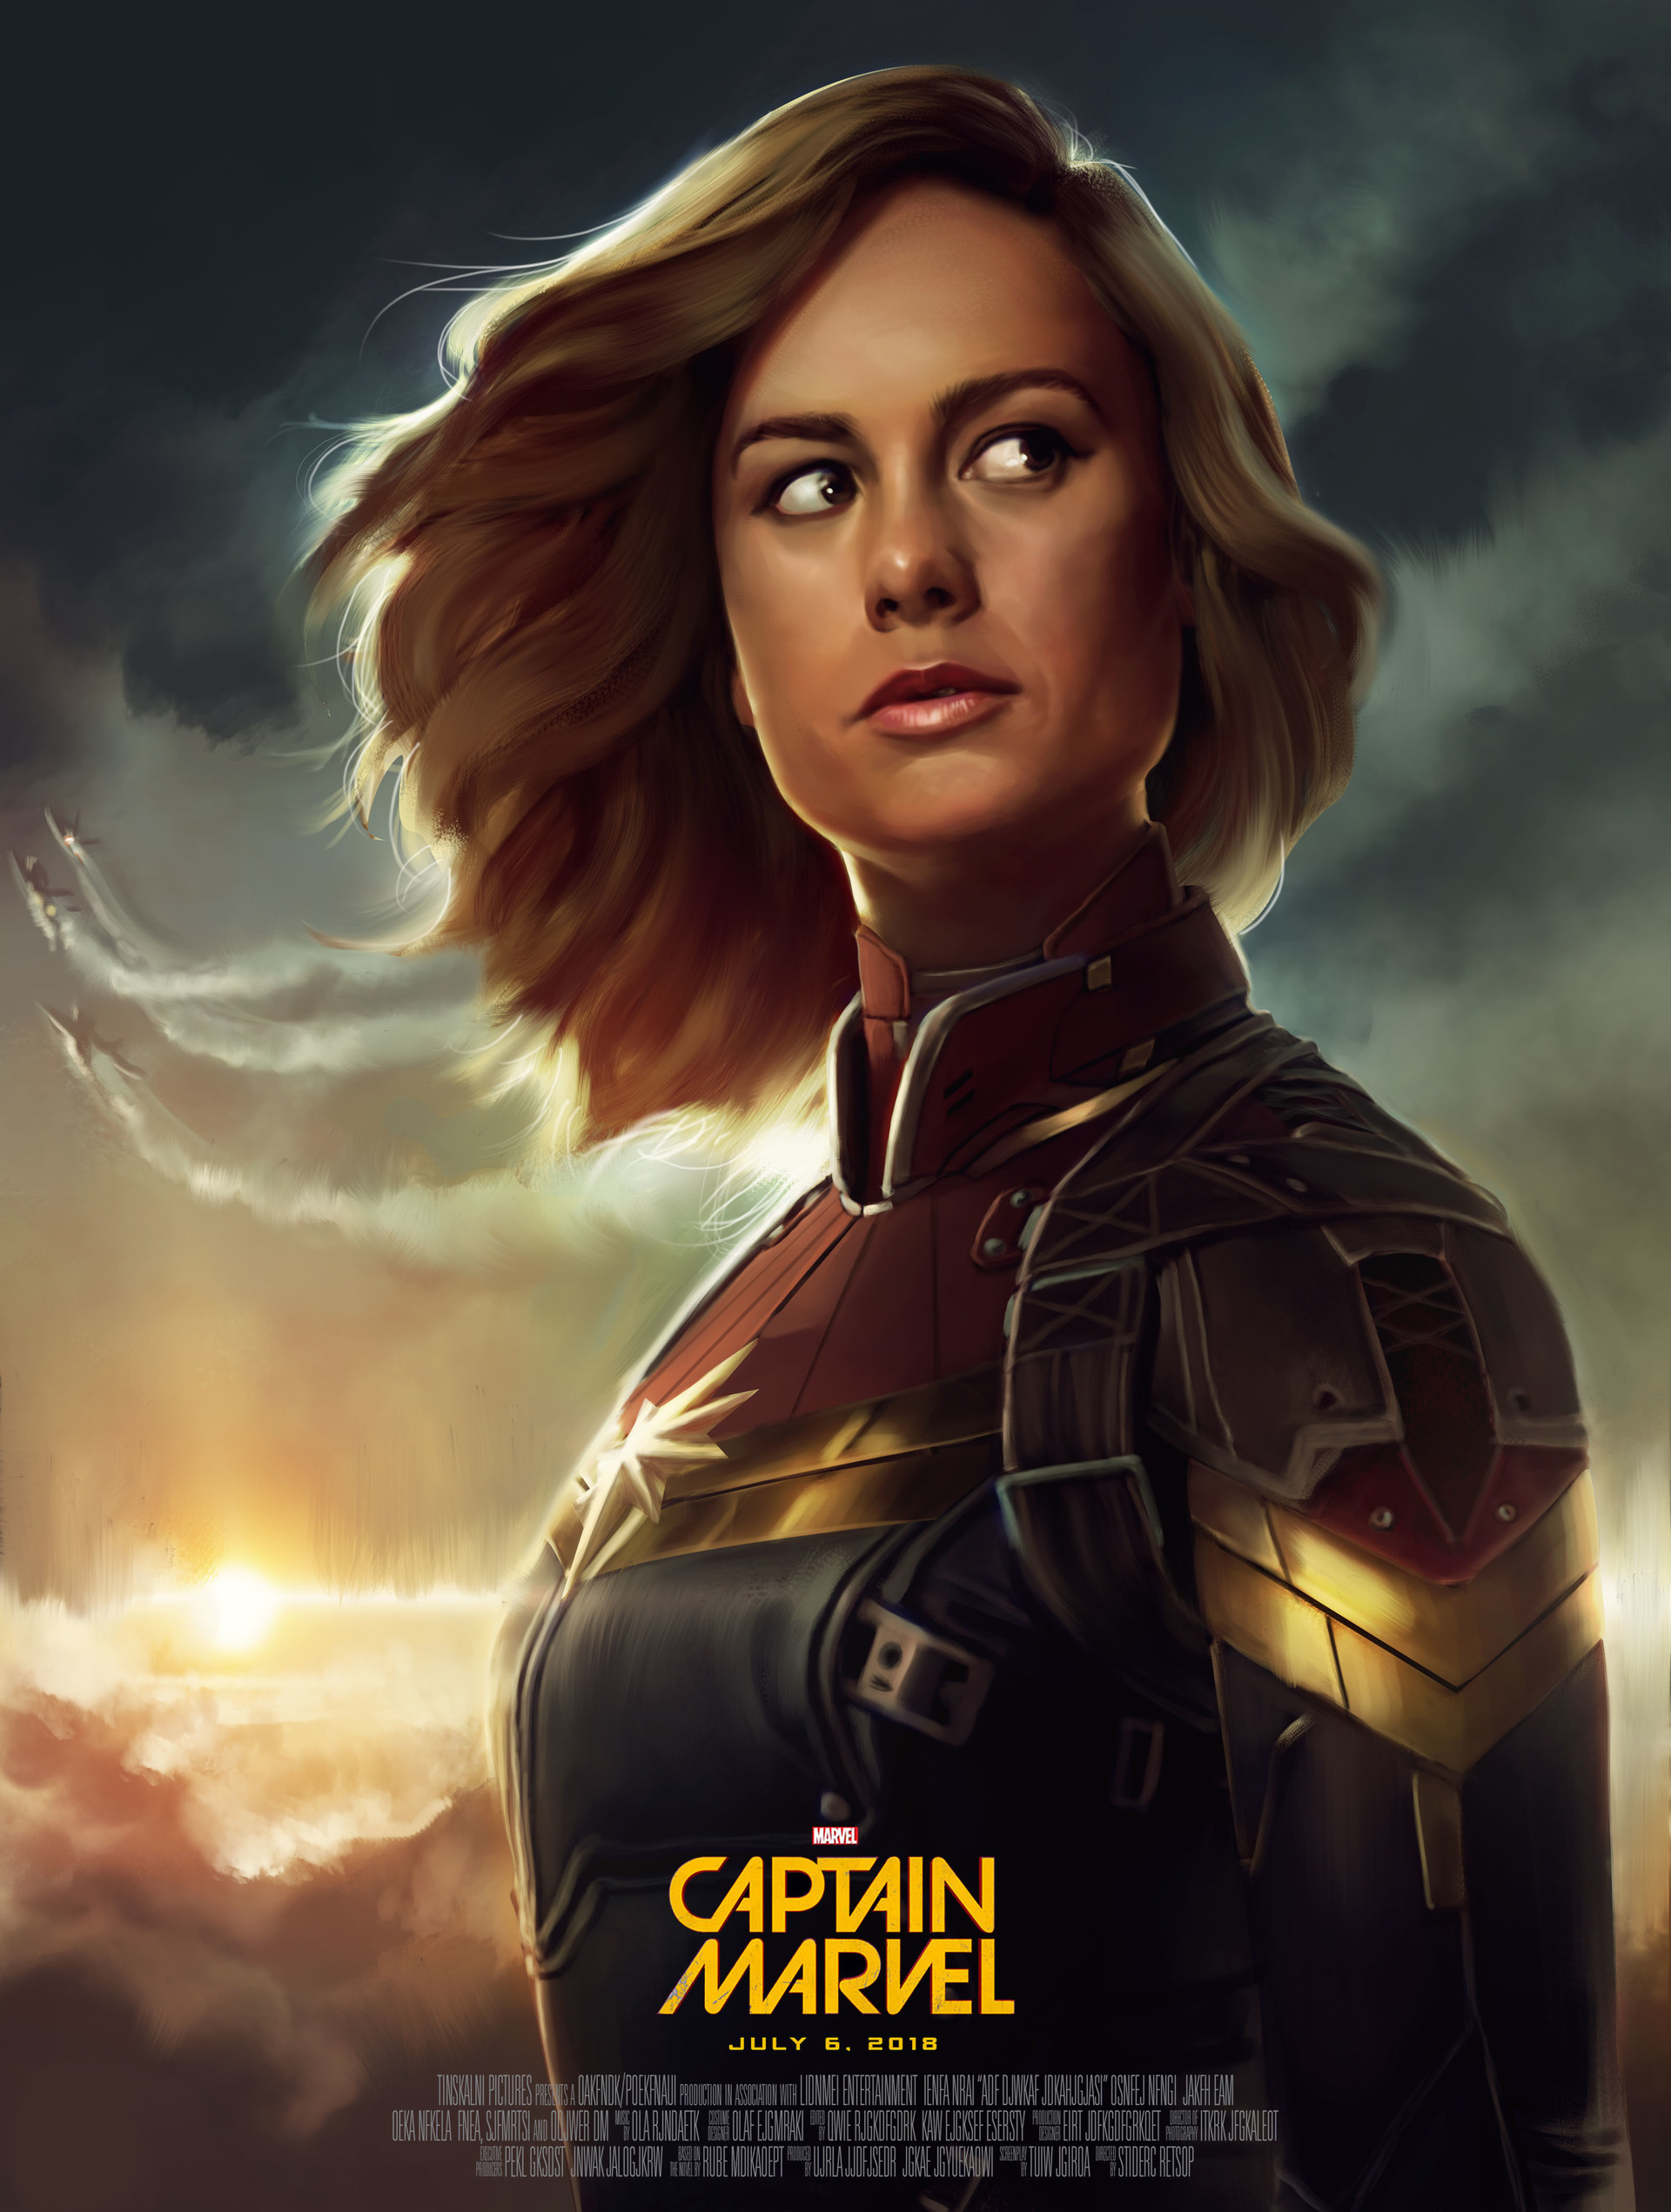 Dave keenan captain marvel movie poster